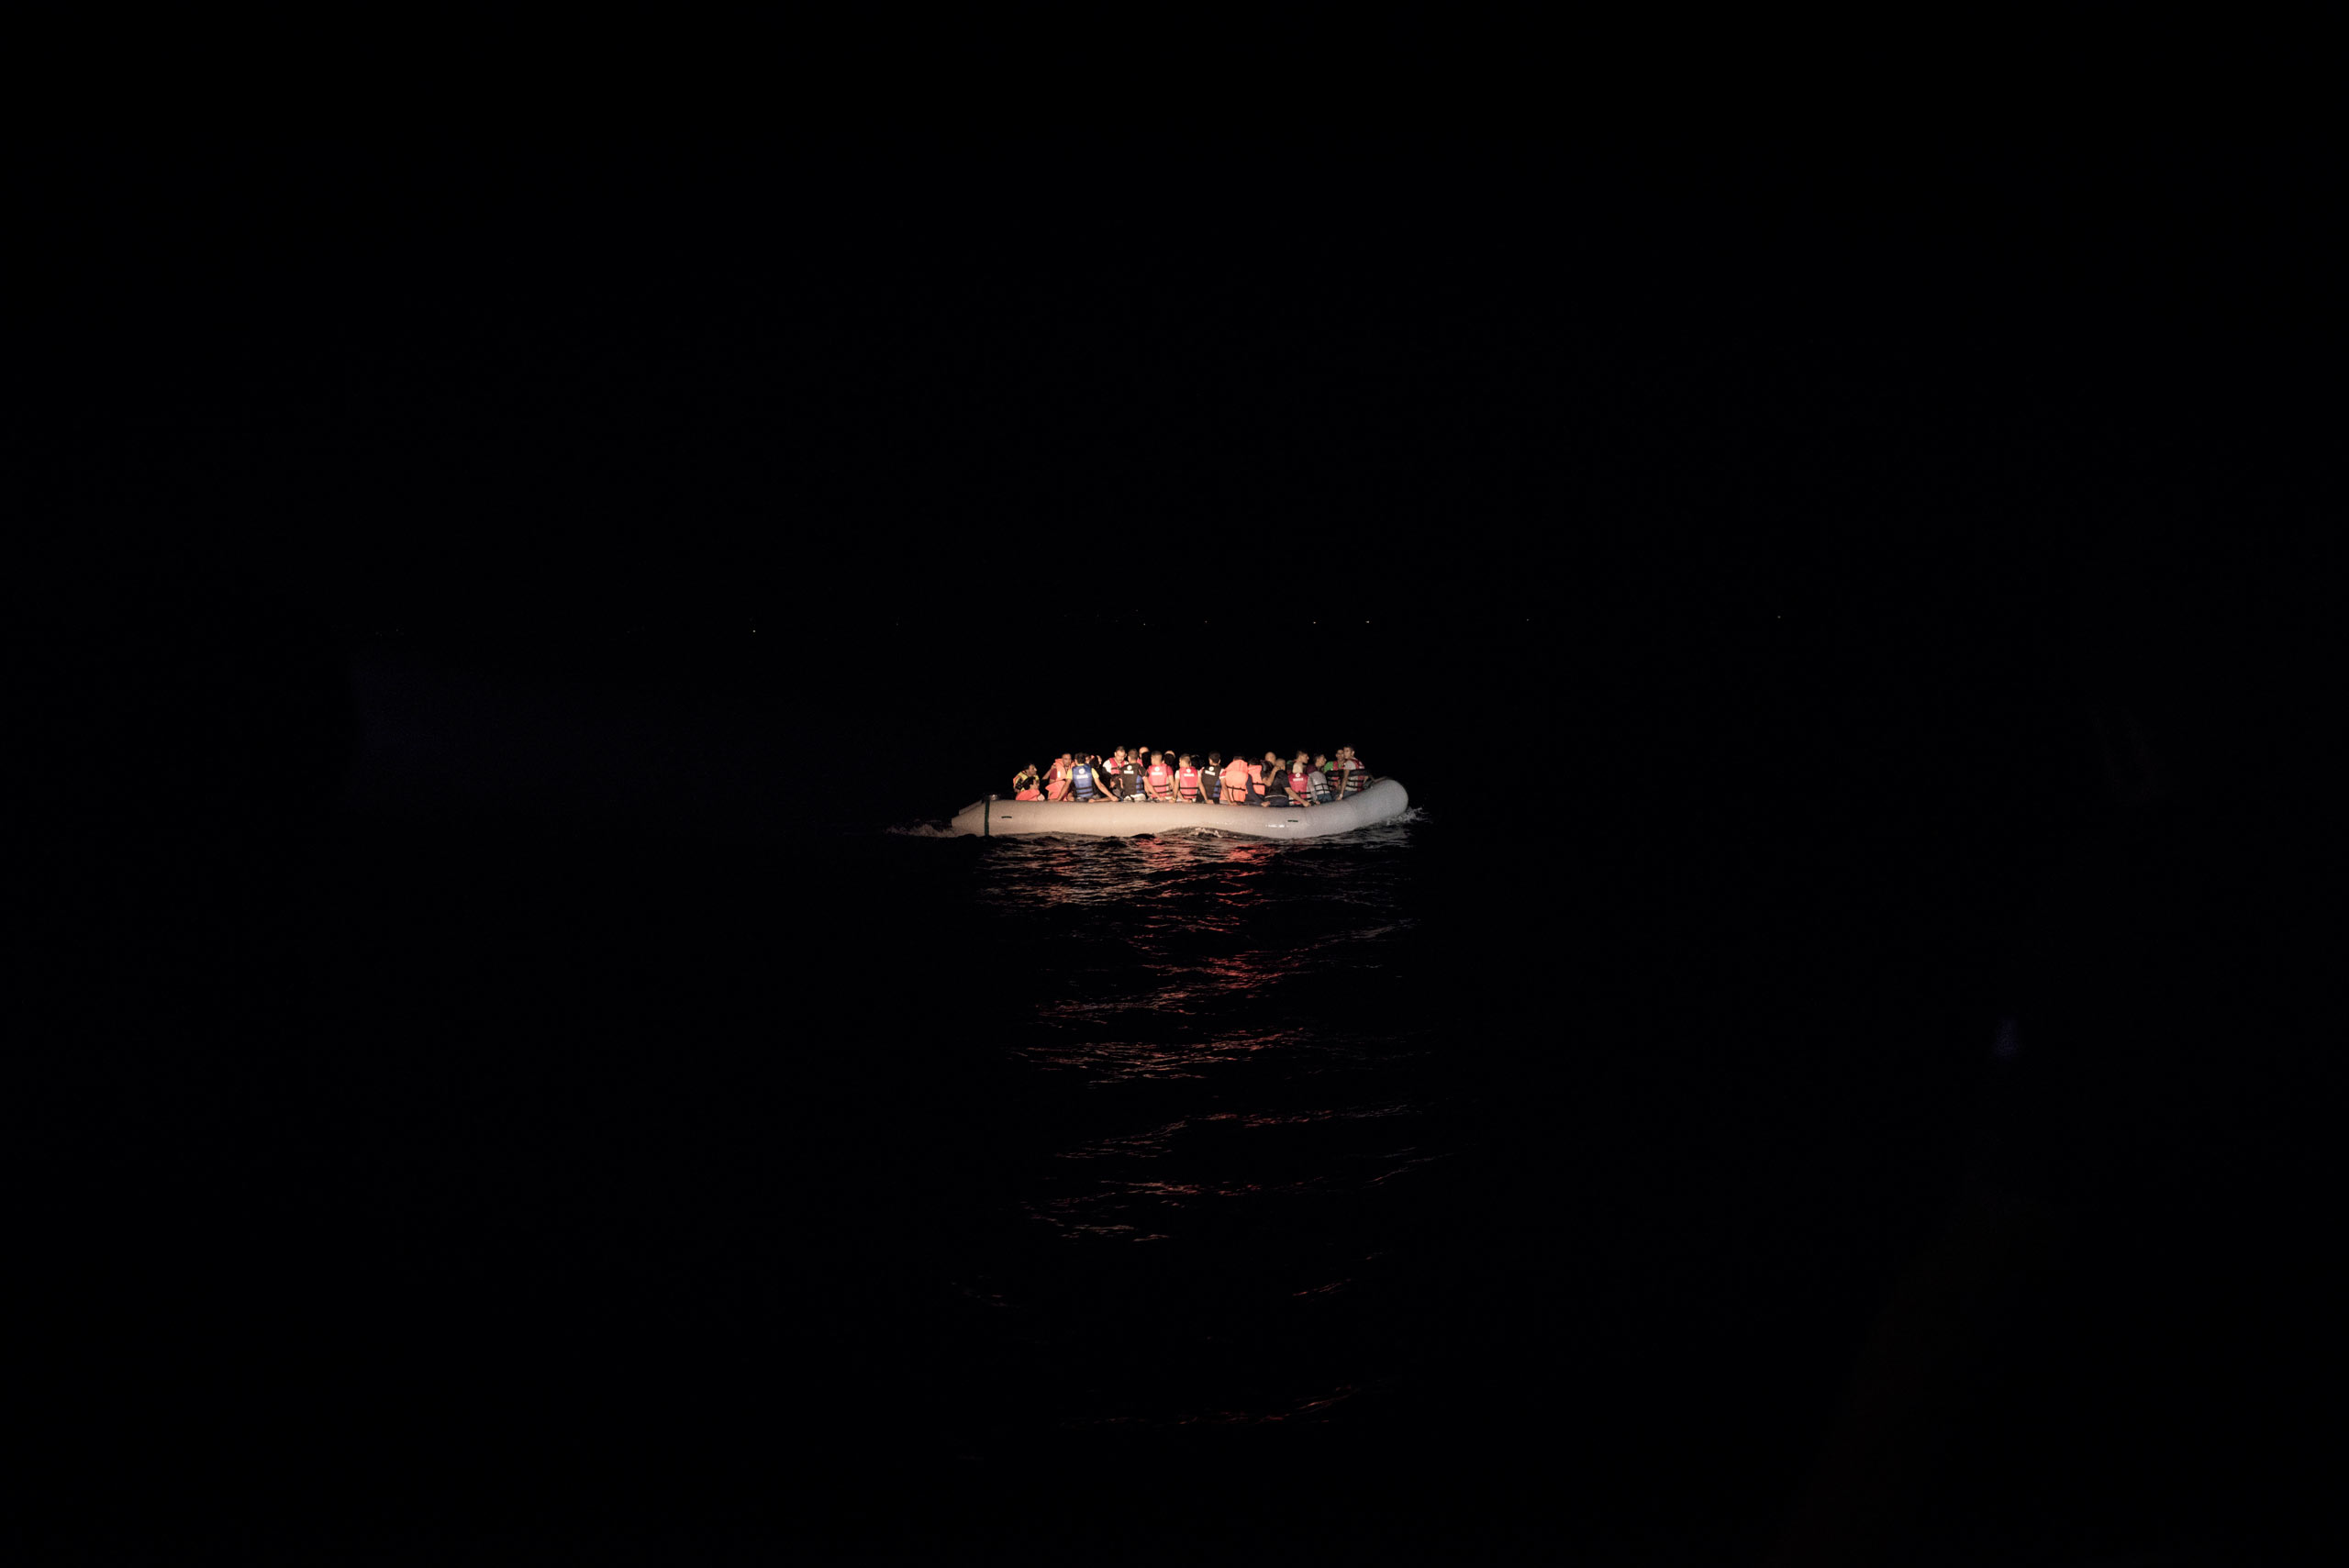 A boat full of migrants, lit by the flashlights from the Greek coast guard, is rescued from the waters near the Greek-Turkish border. Sept. 5, 2015.